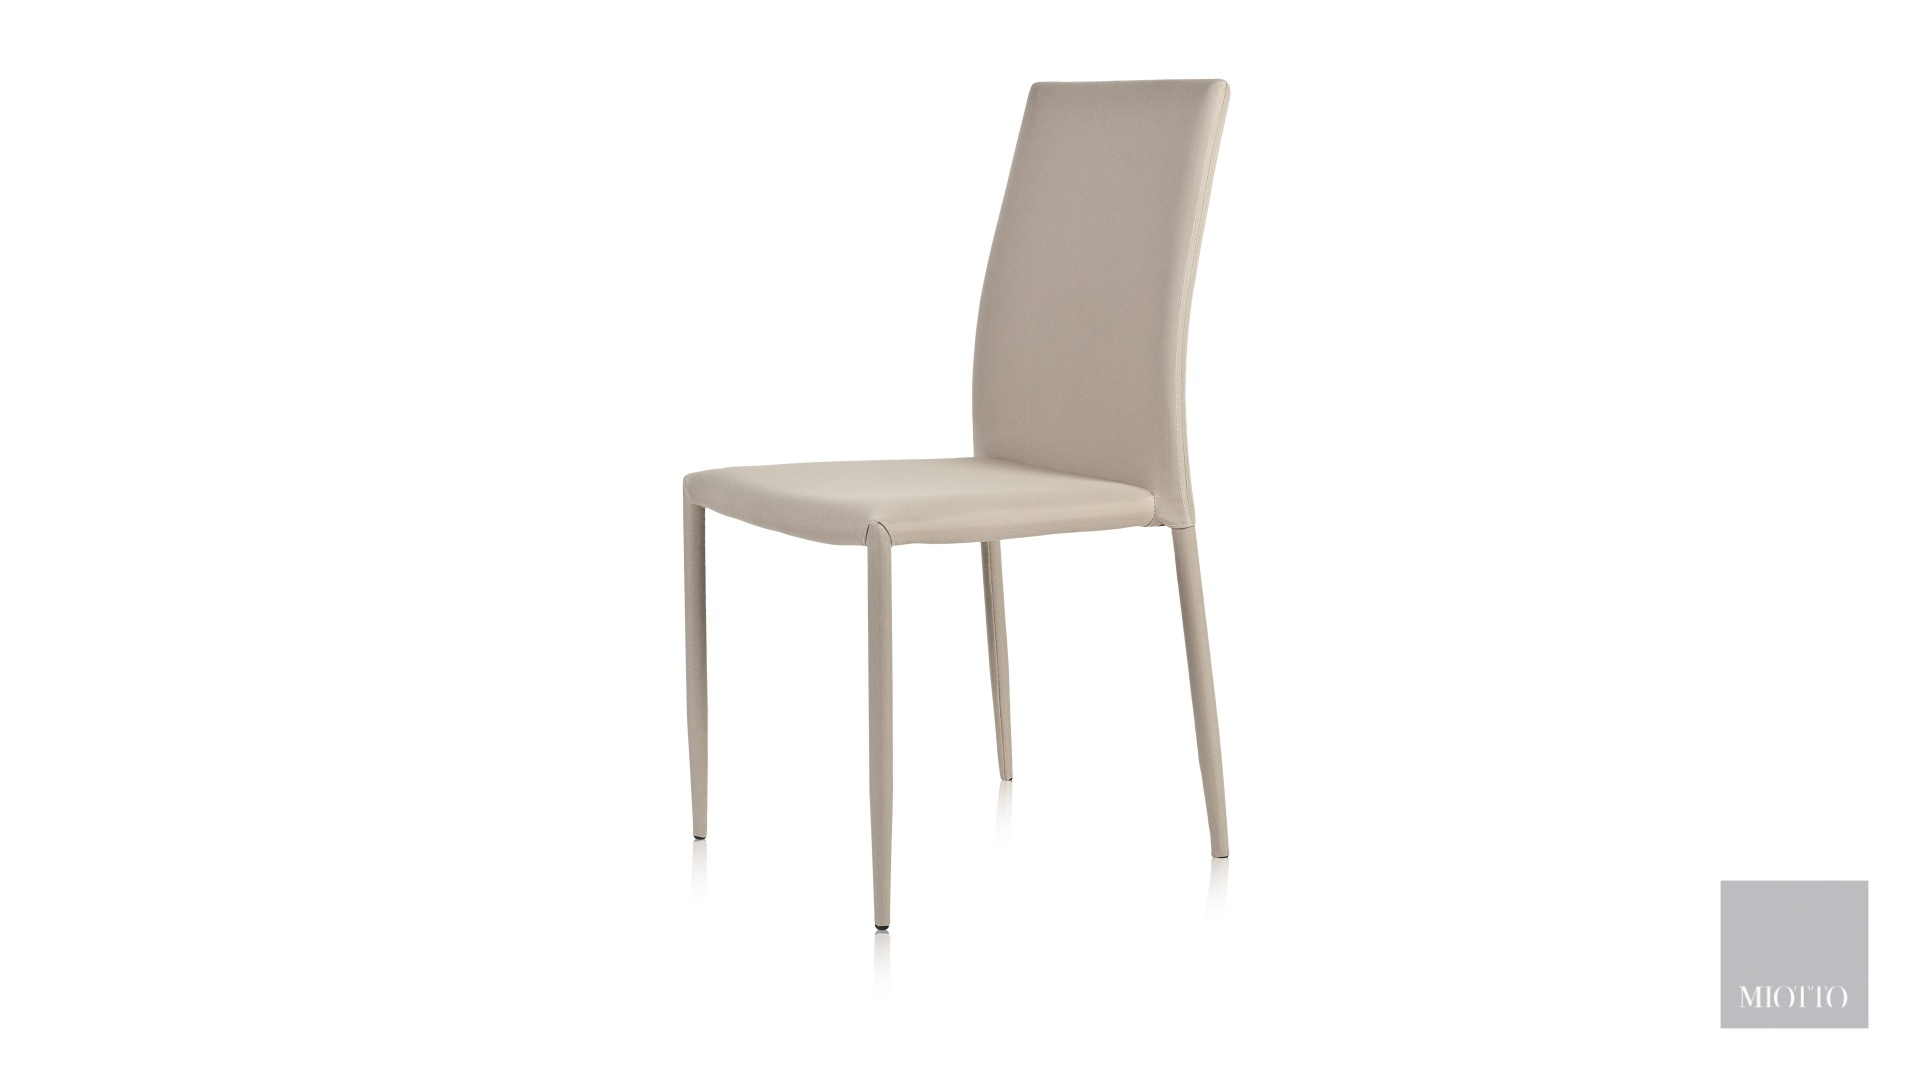 miotto_Lara fabric dining chair cream front miotto furniture